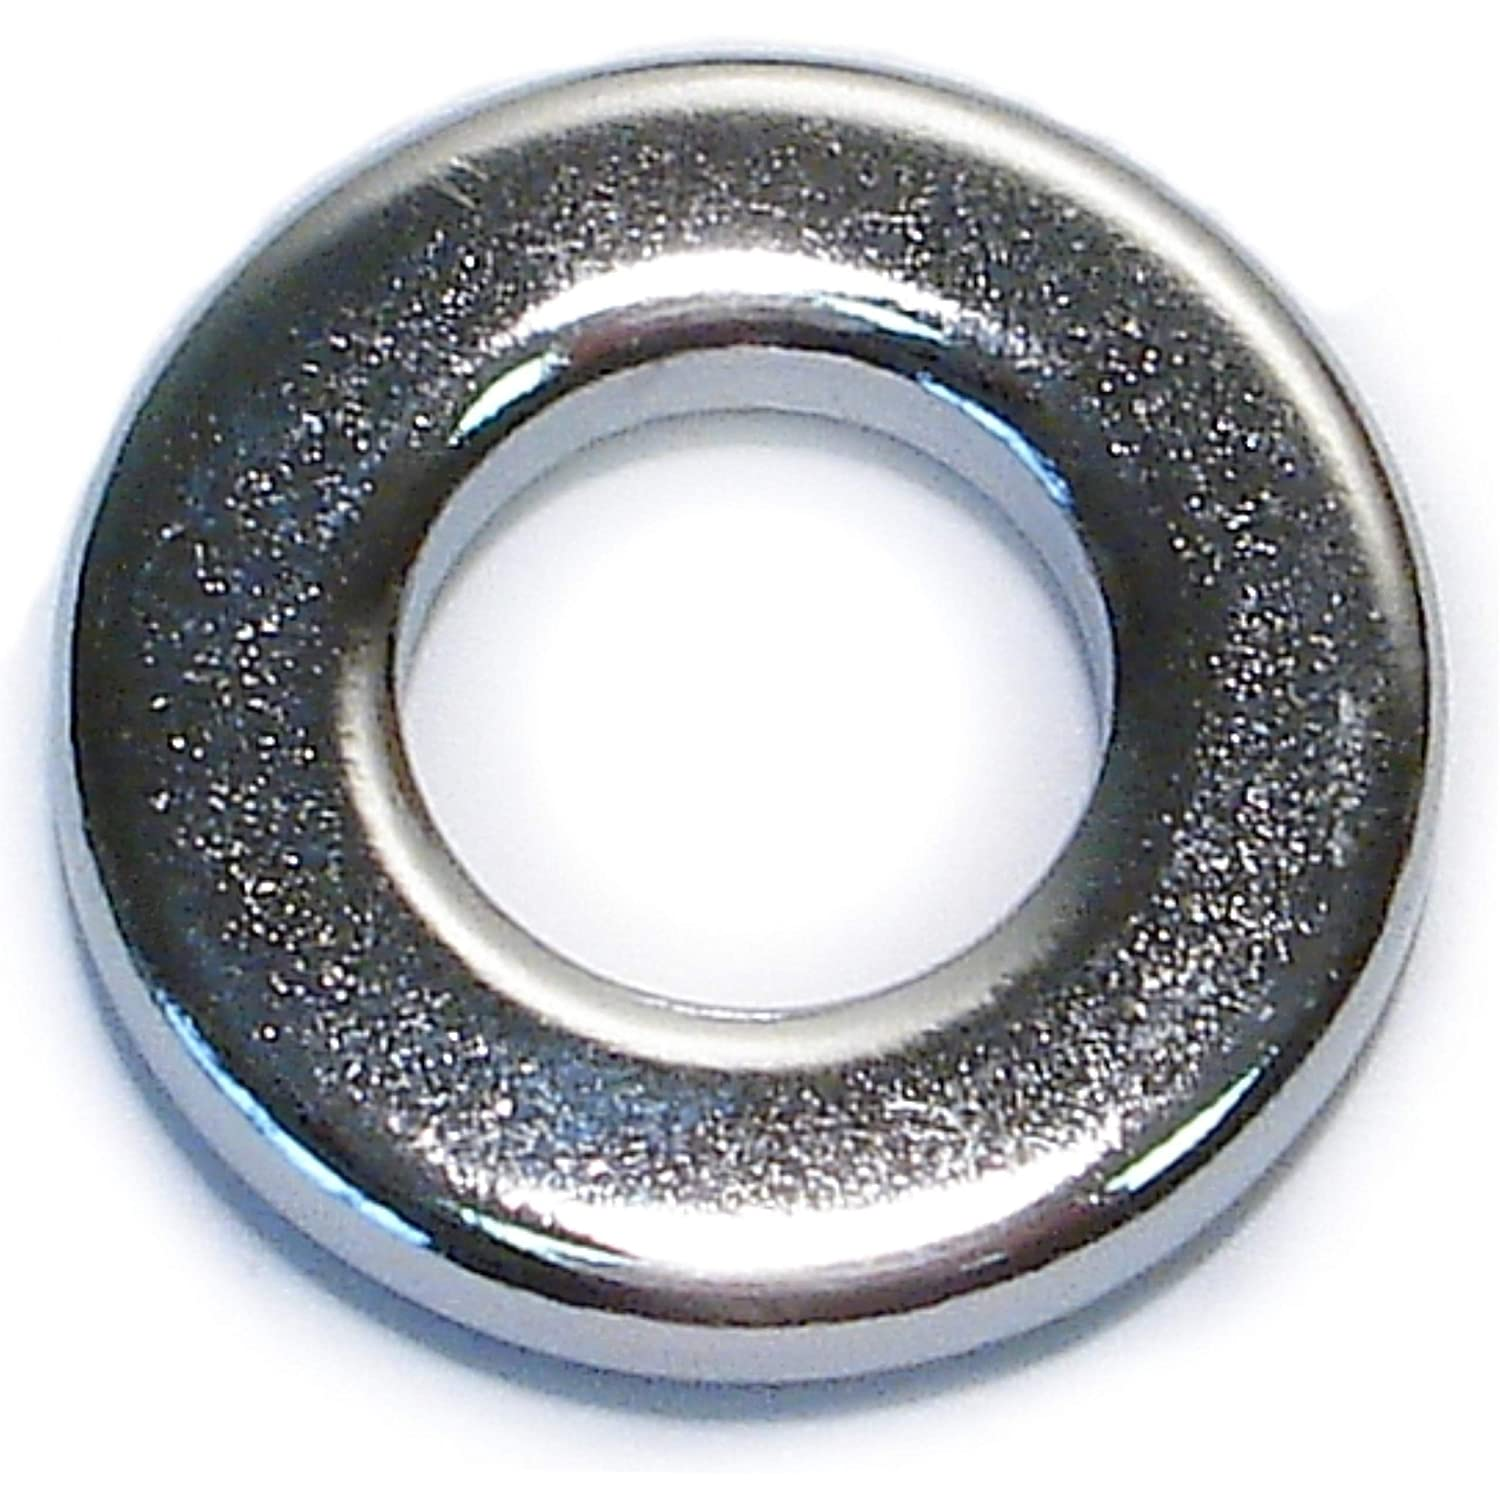 5//16 Hard-to-Find Fastener 014973441005 SAE Extra Thick Washers Piece-10 Midwest Fastener Corp